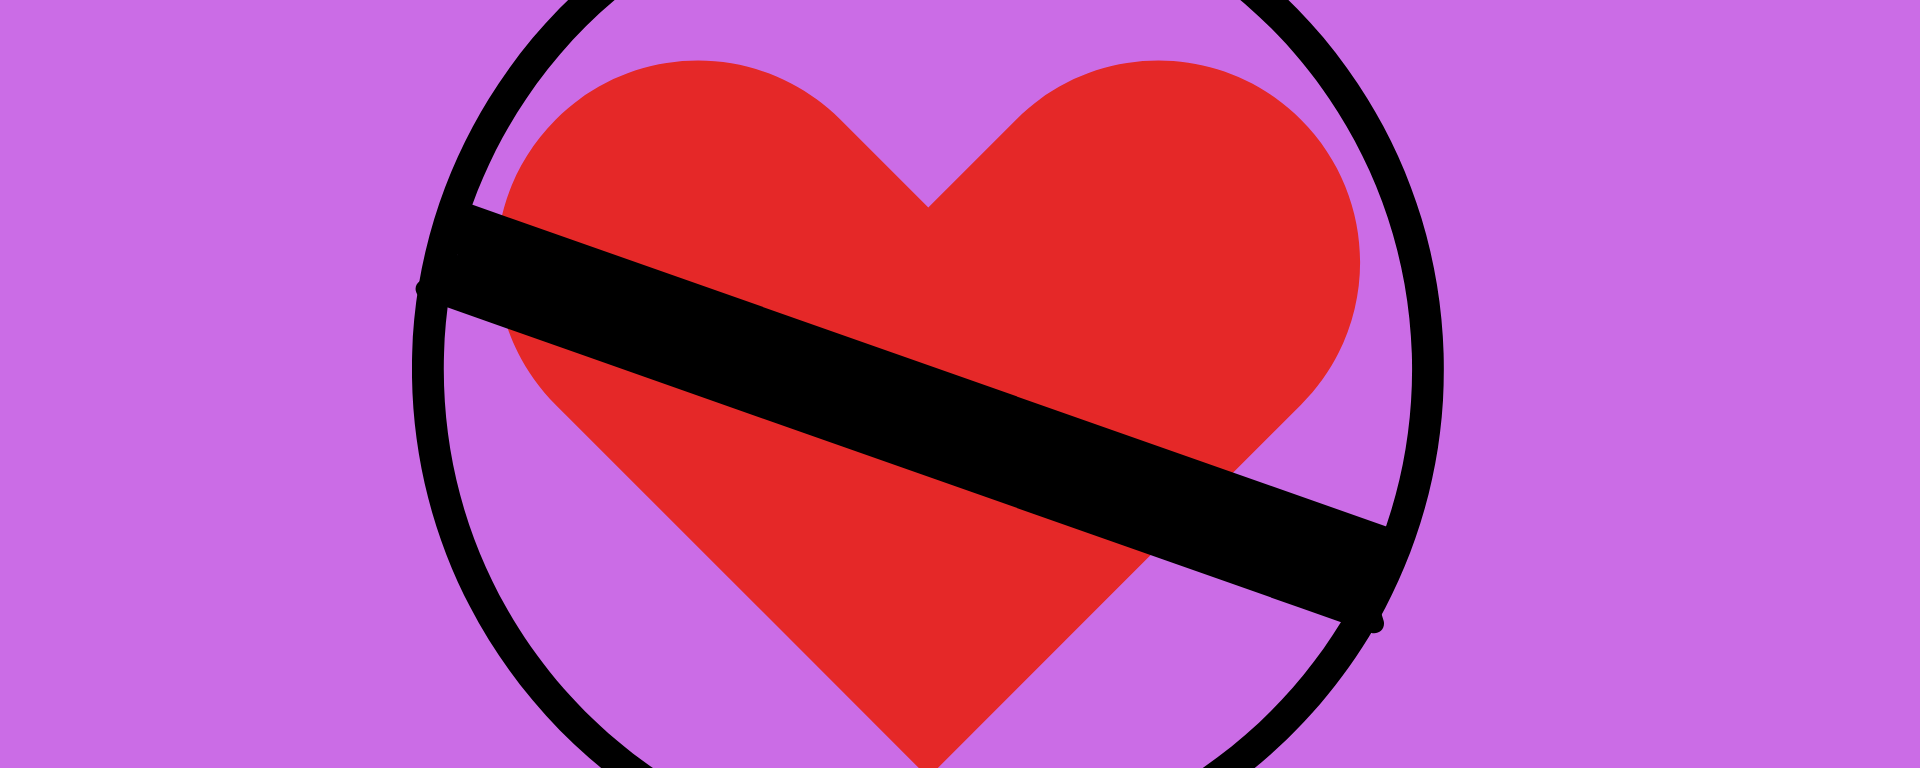 A red heart inside a not allowed circle on a purple background